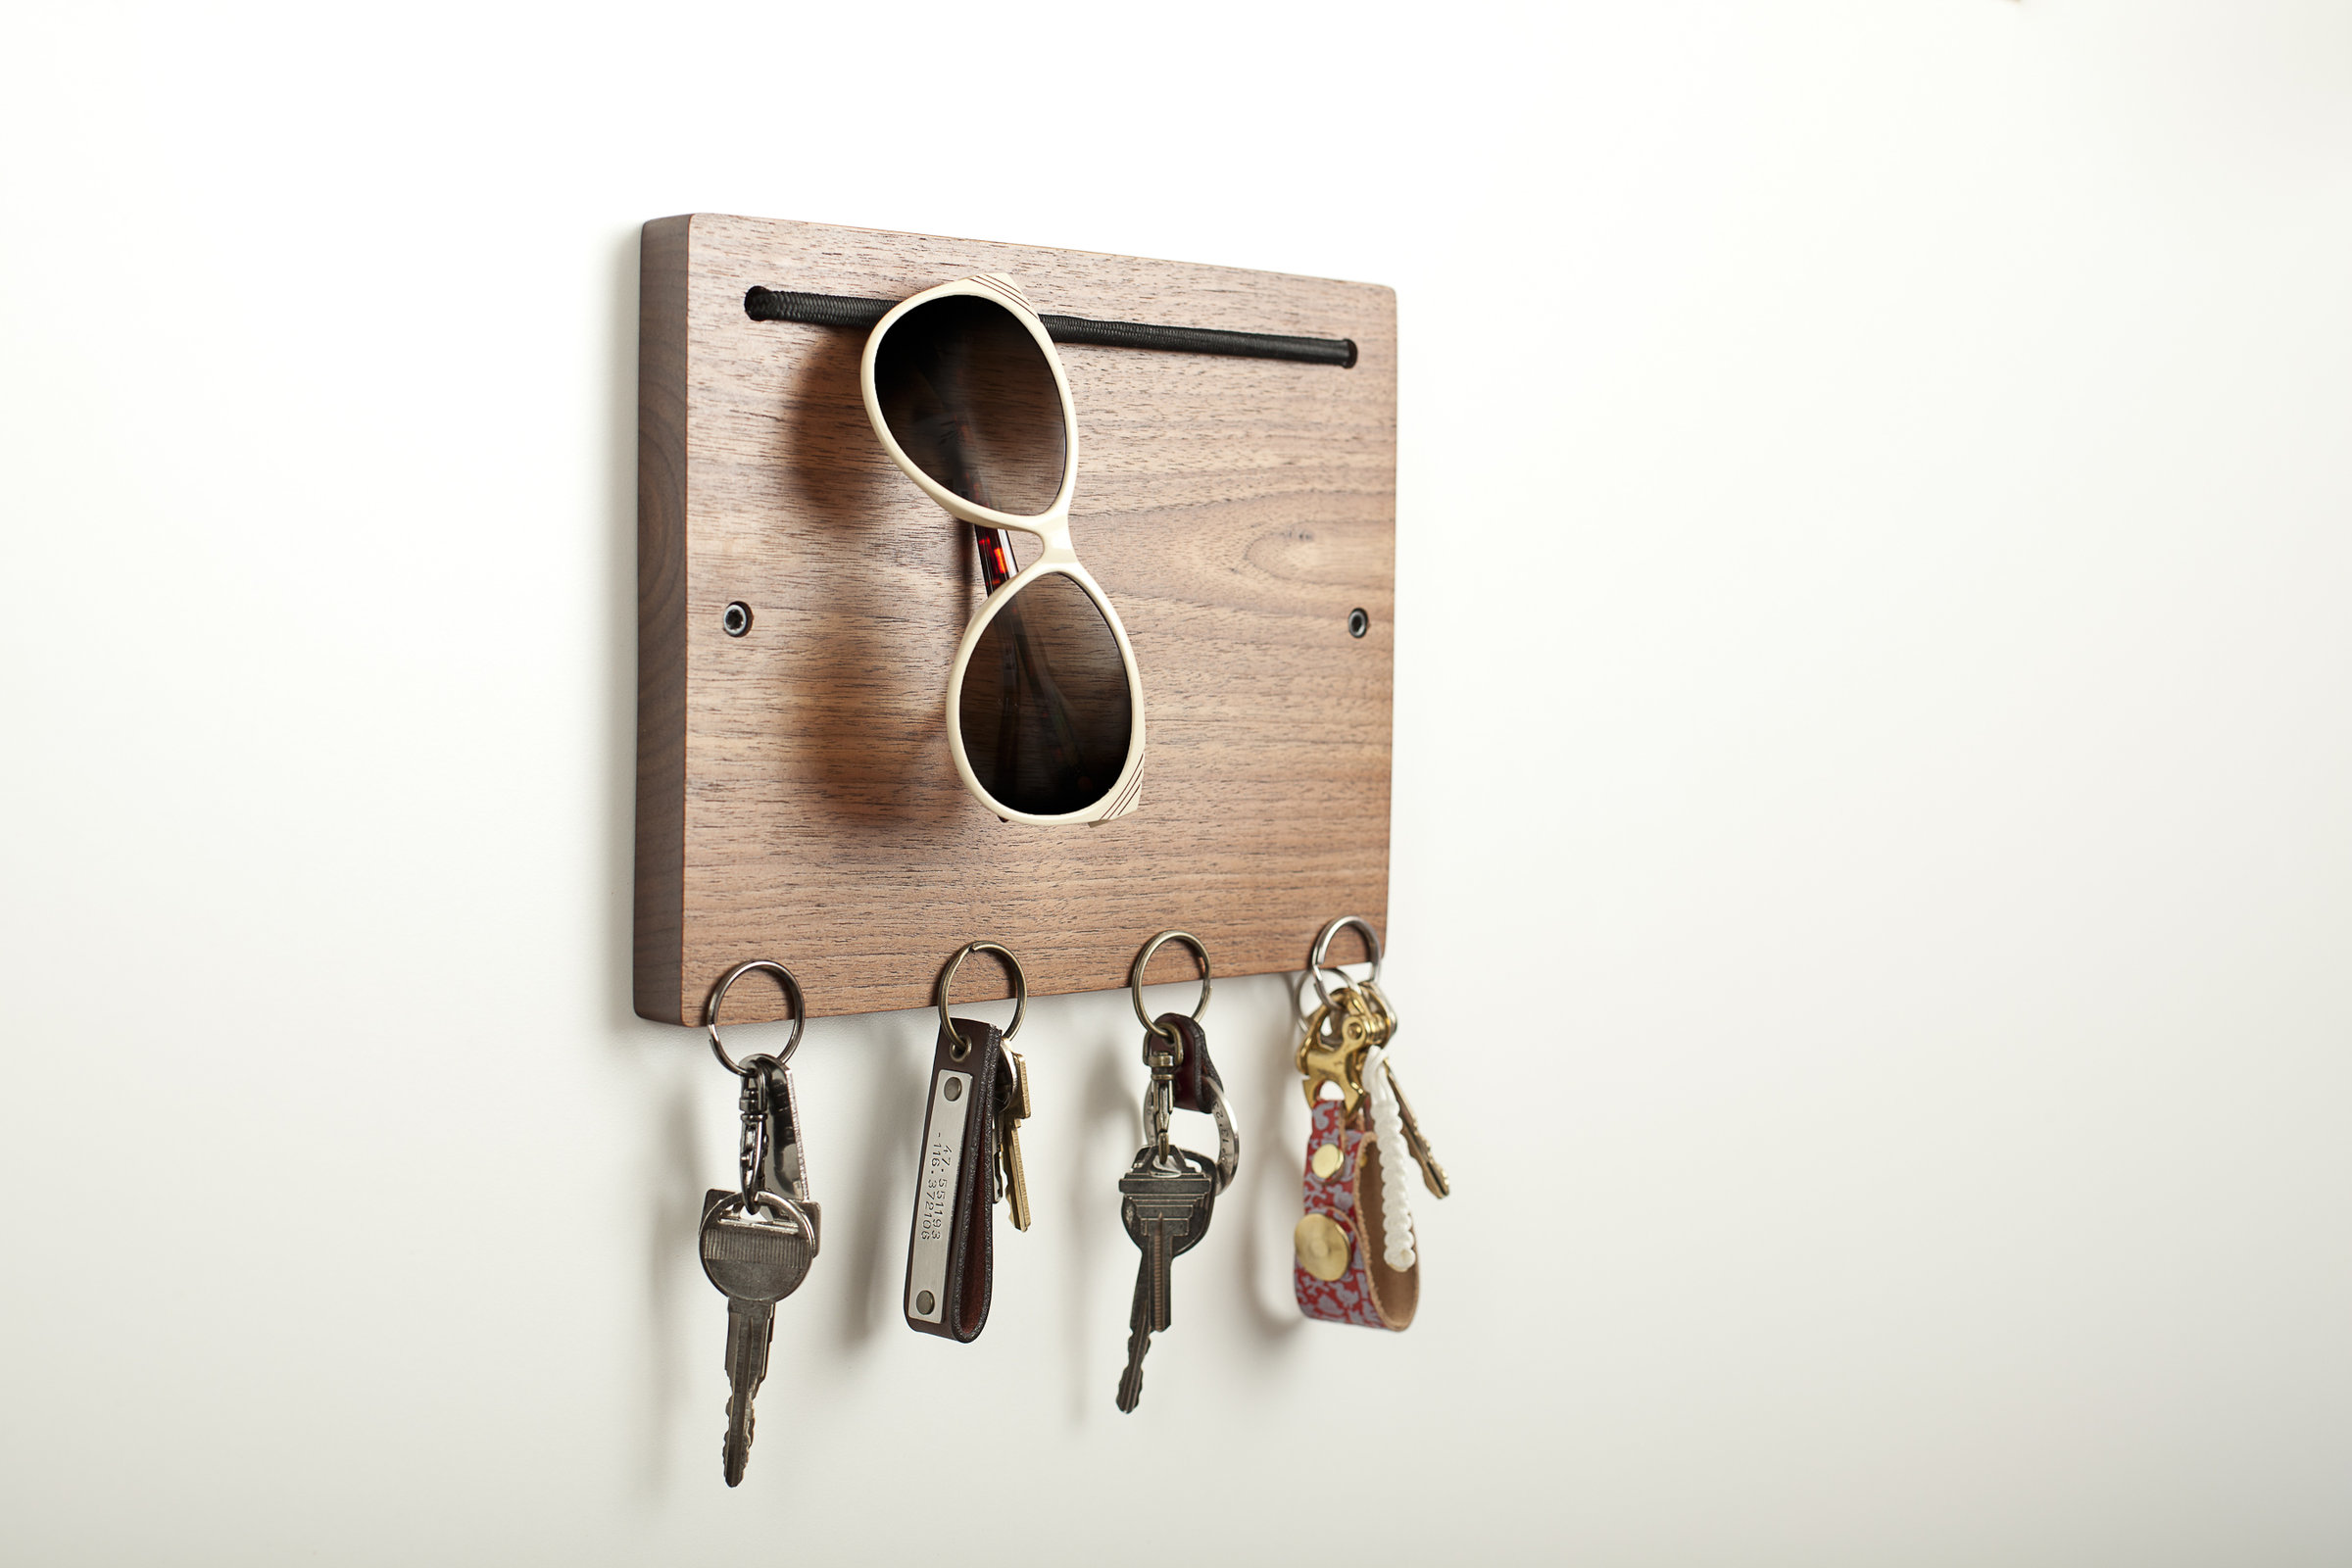 Blokkey eyewear and key holder in walnut by brad reed nelson wood wall organizer artful home - Key racks for wall ...